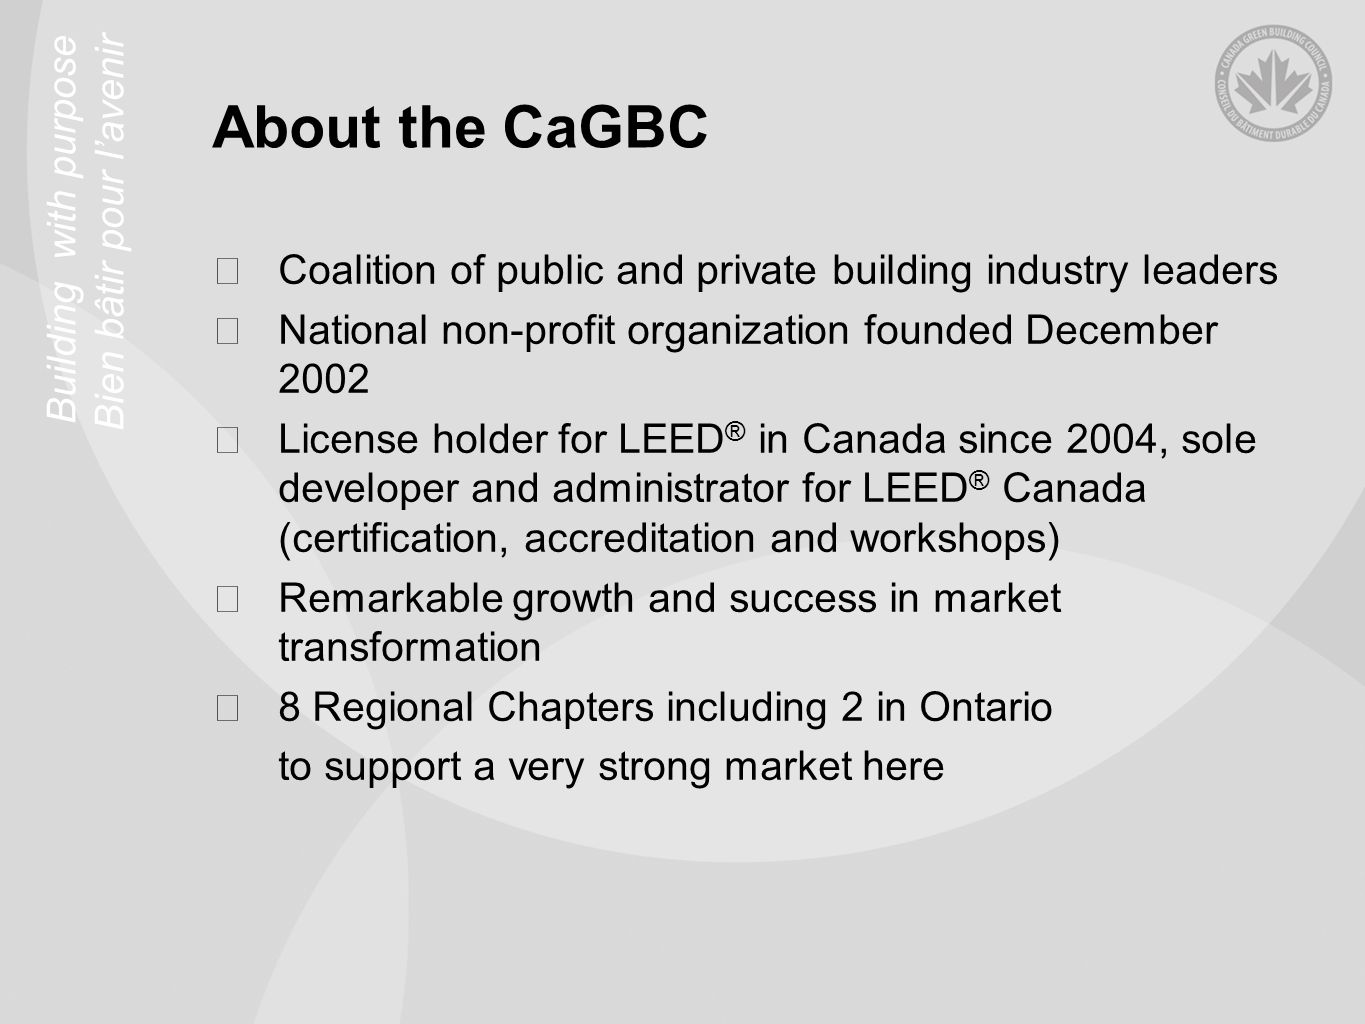 Building with purpose Bien bâtir pour lavenir About the CaGBC Coalition of public and private building industry leaders National non-profit organization founded December 2002 License holder for LEED ® in Canada since 2004, sole developer and administrator for LEED ® Canada (certification, accreditation and workshops) Remarkable growth and success in market transformation 8 Regional Chapters including 2 in Ontario to support a very strong market here